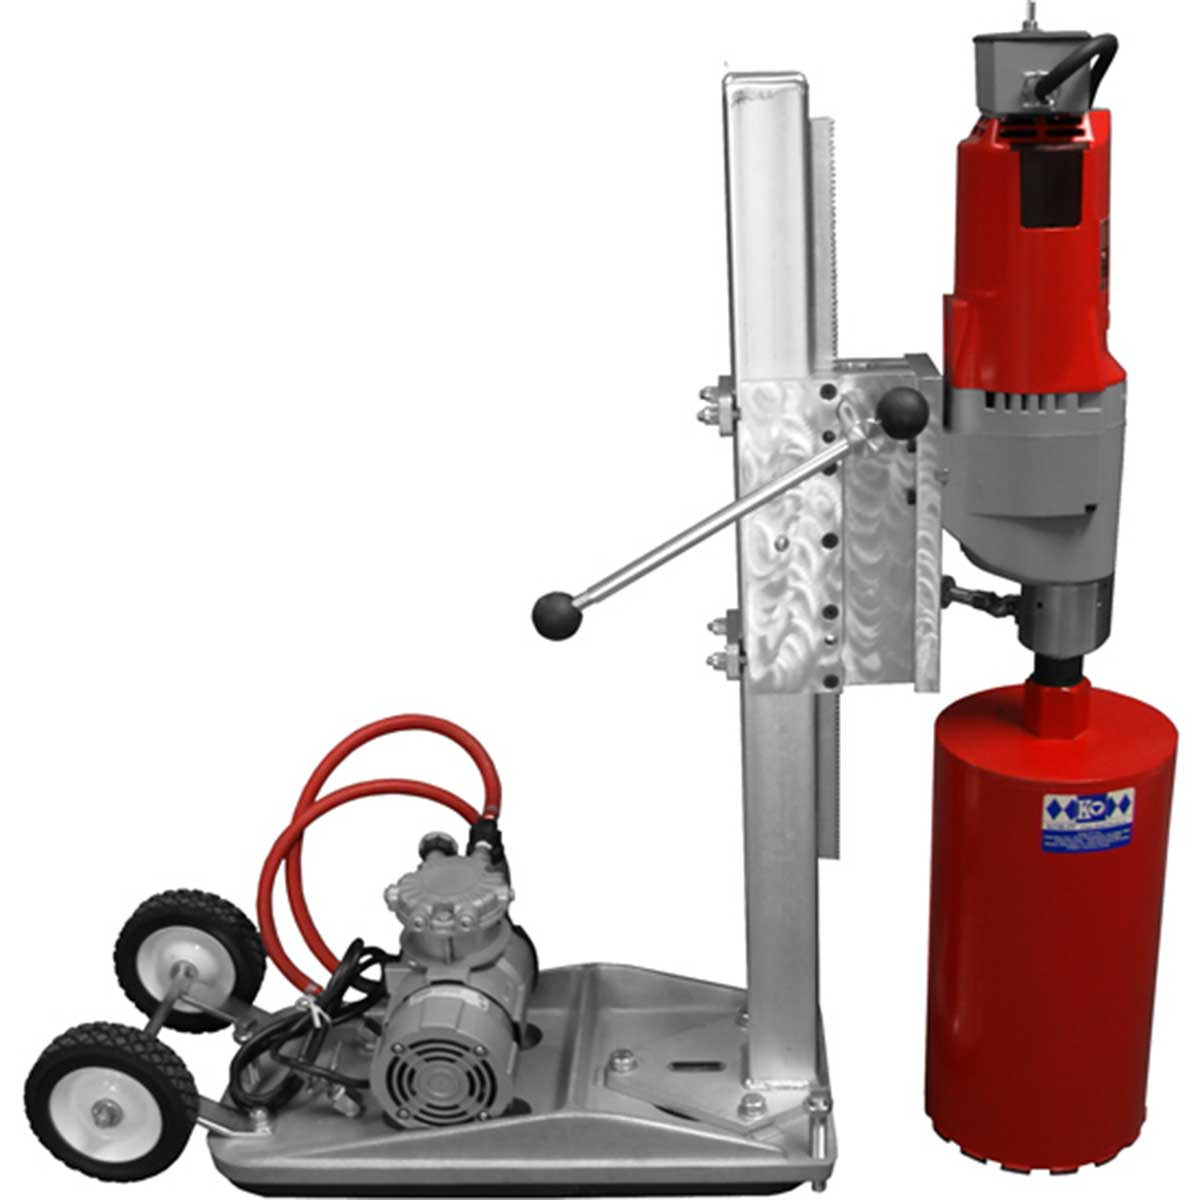 Kor-It K-102 vacuum base